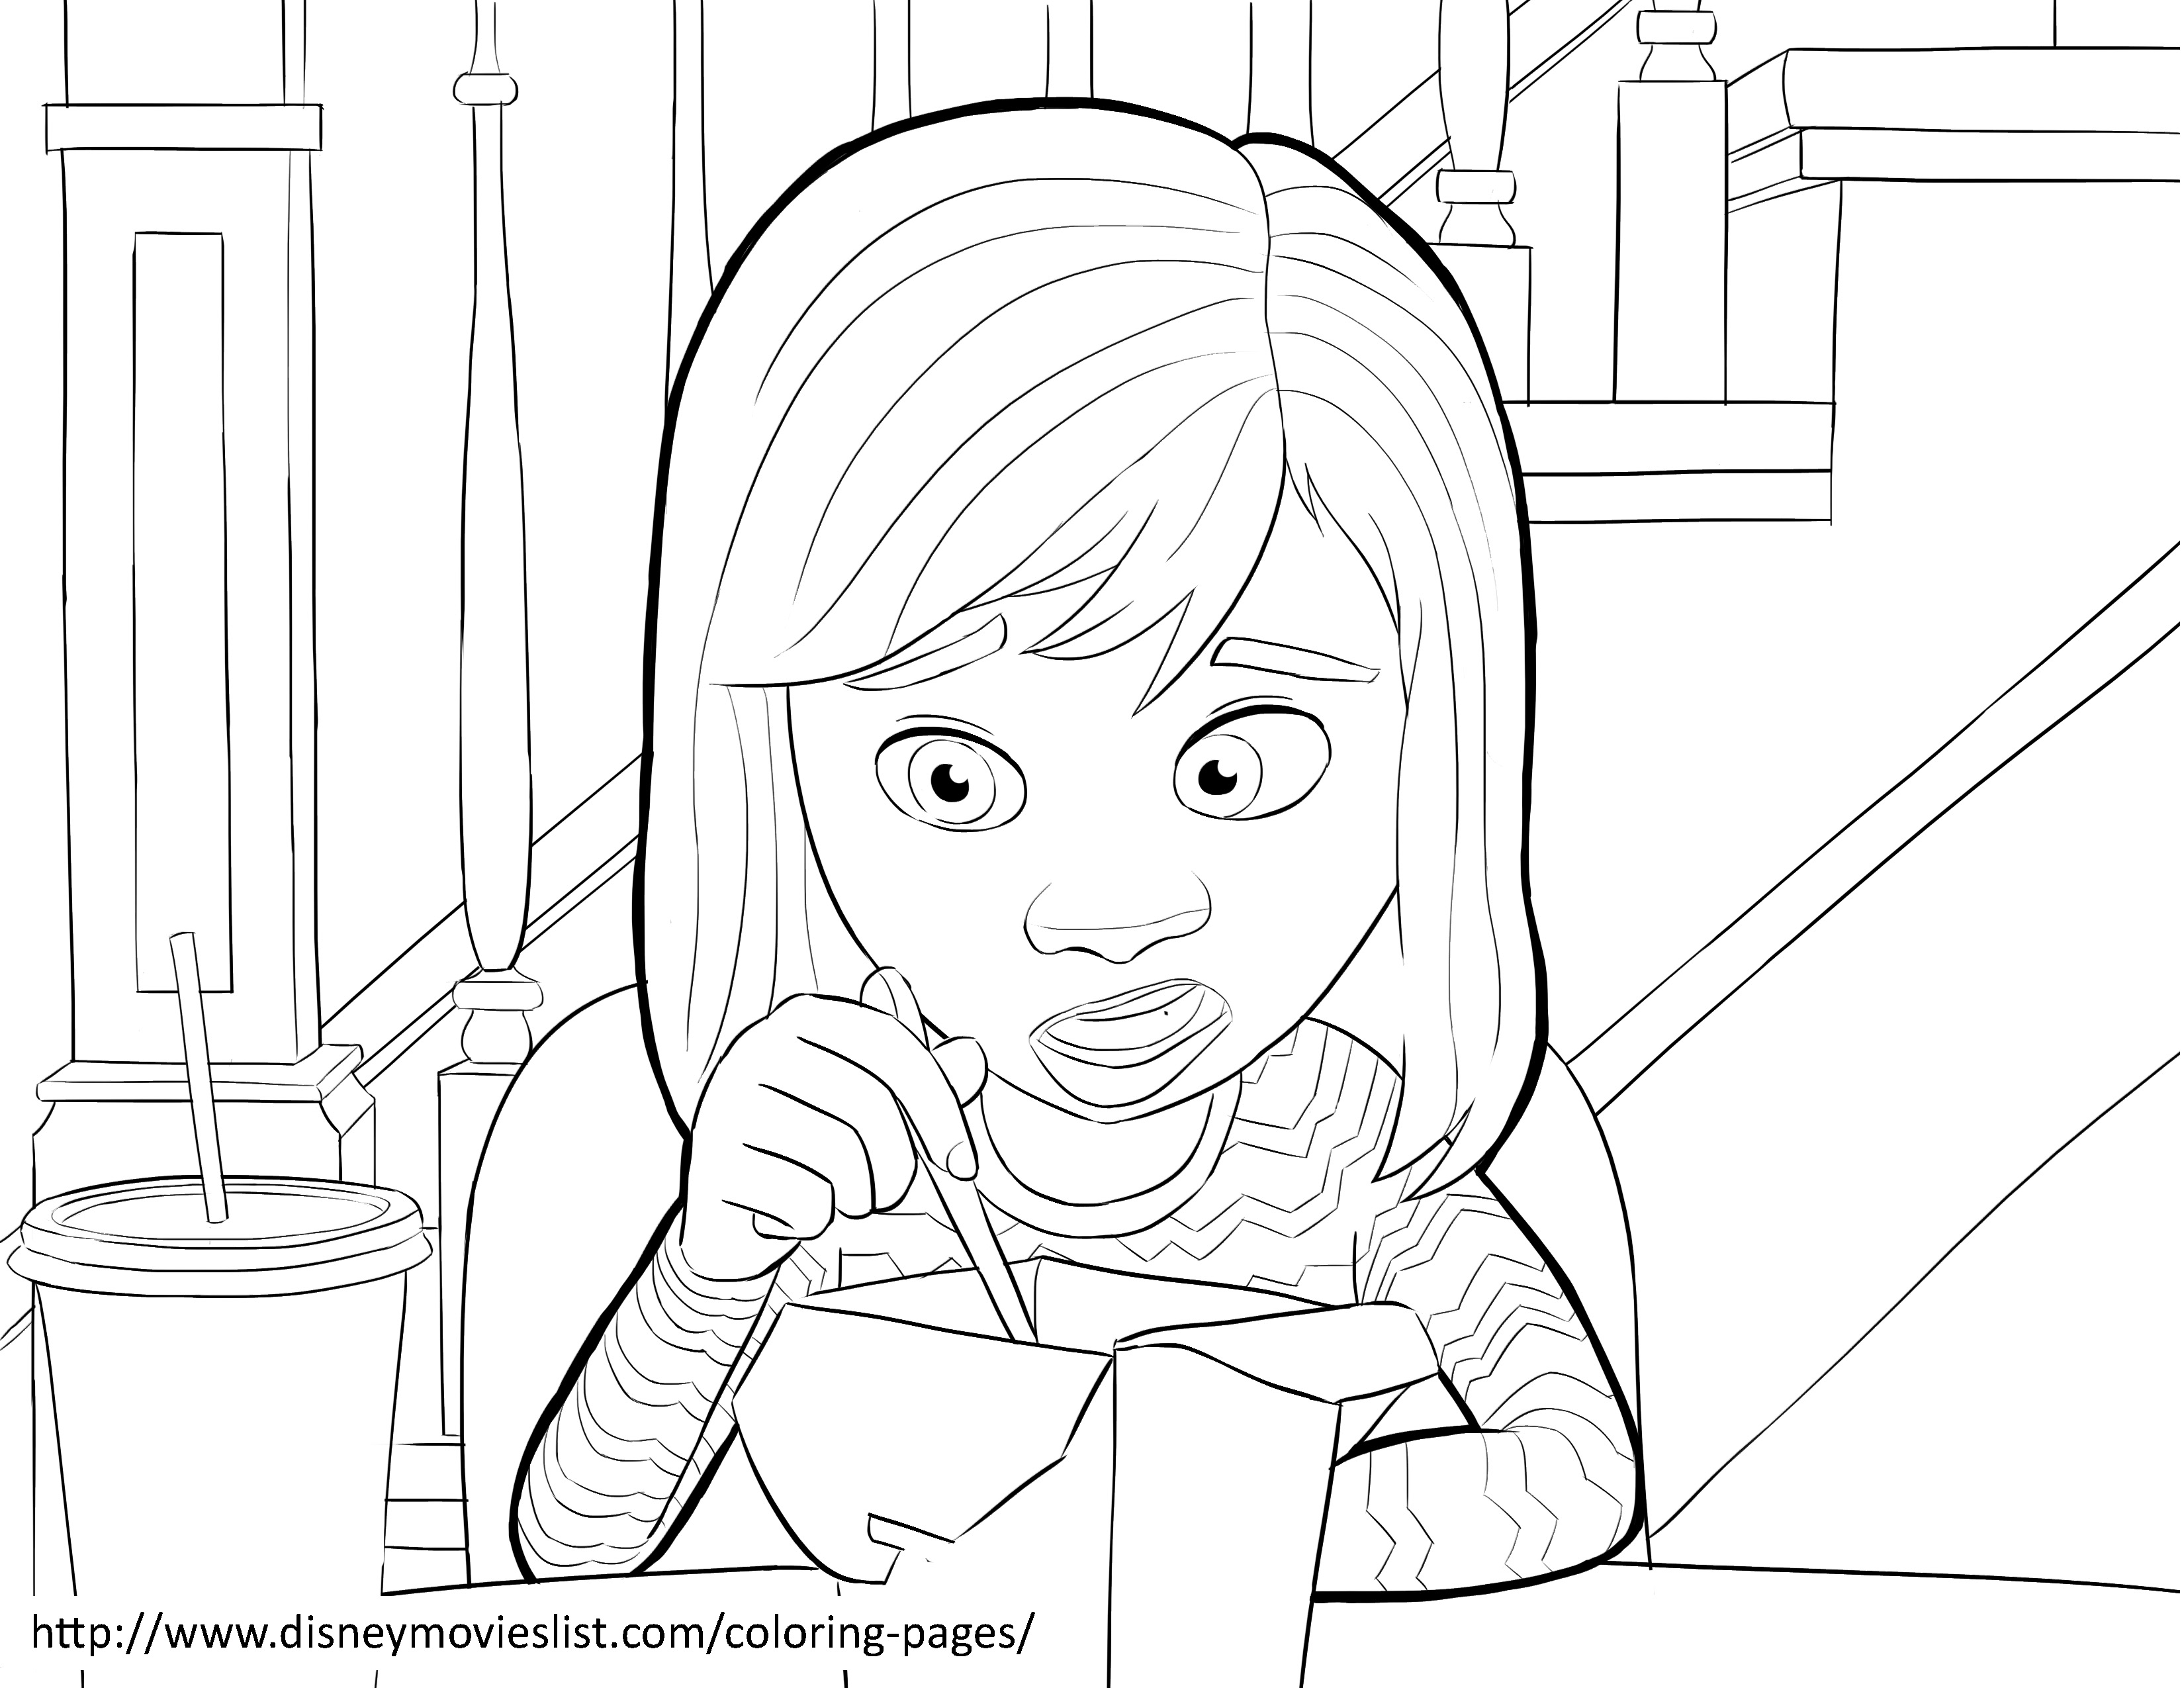 3300x2550 New Printable Coloring Pages Disney Inside Out